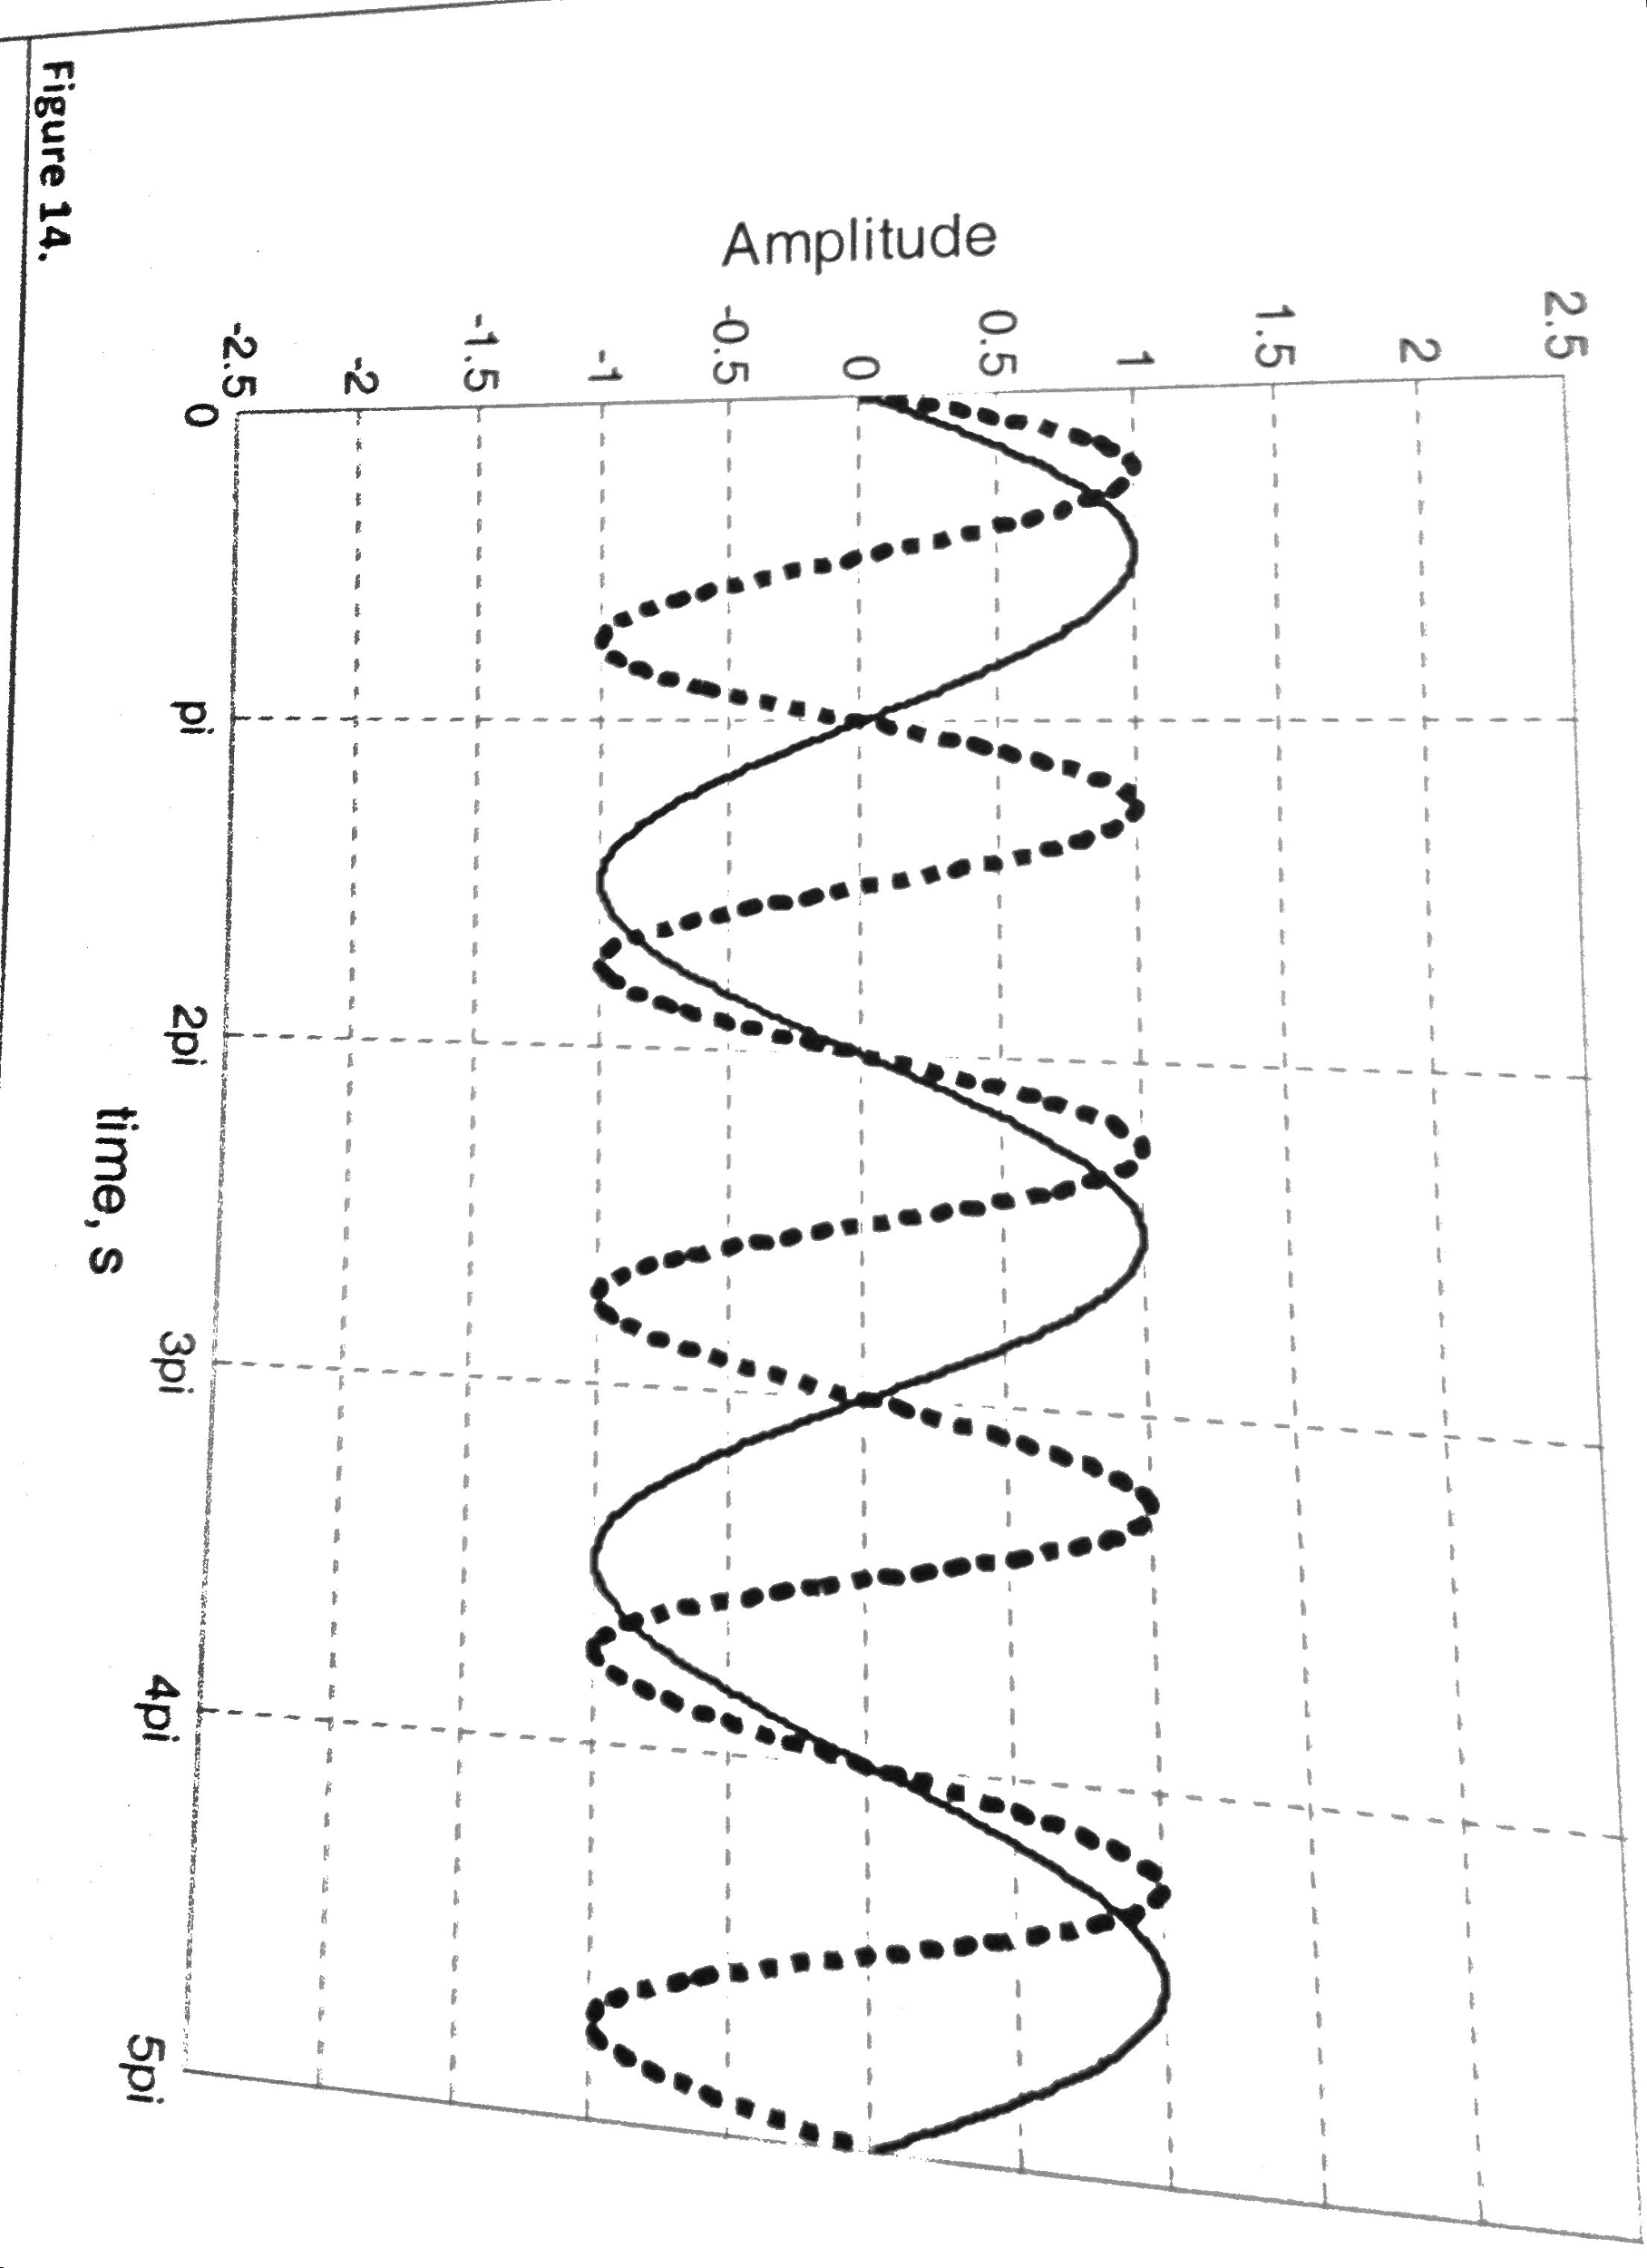 In Figure 14, the frequency of the a.c. source rep